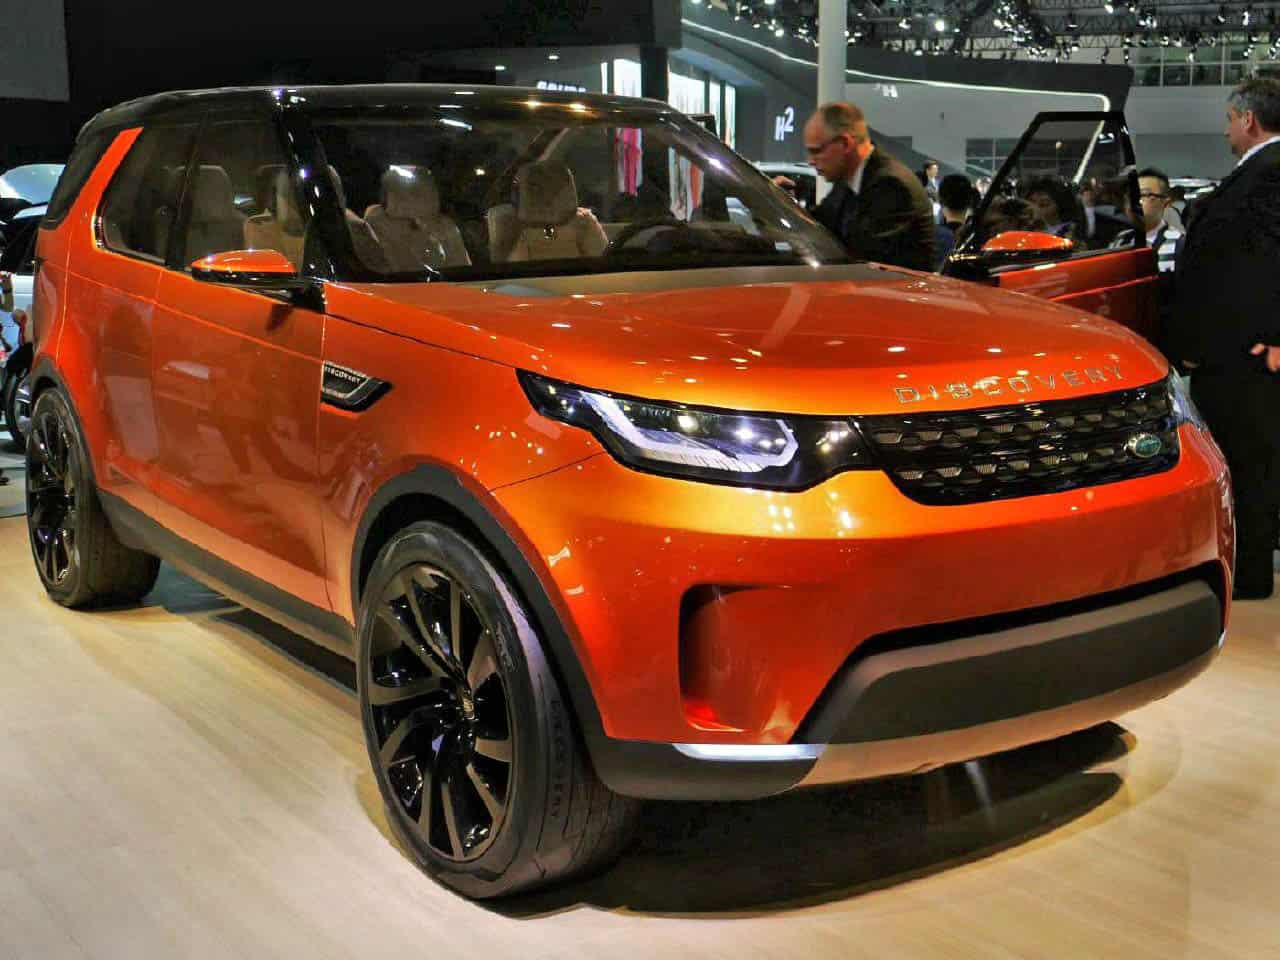 https://www.formtrends.com/wp-content/uploads/2014/06/land-rover_discovery-vision-concept_4810.jpg